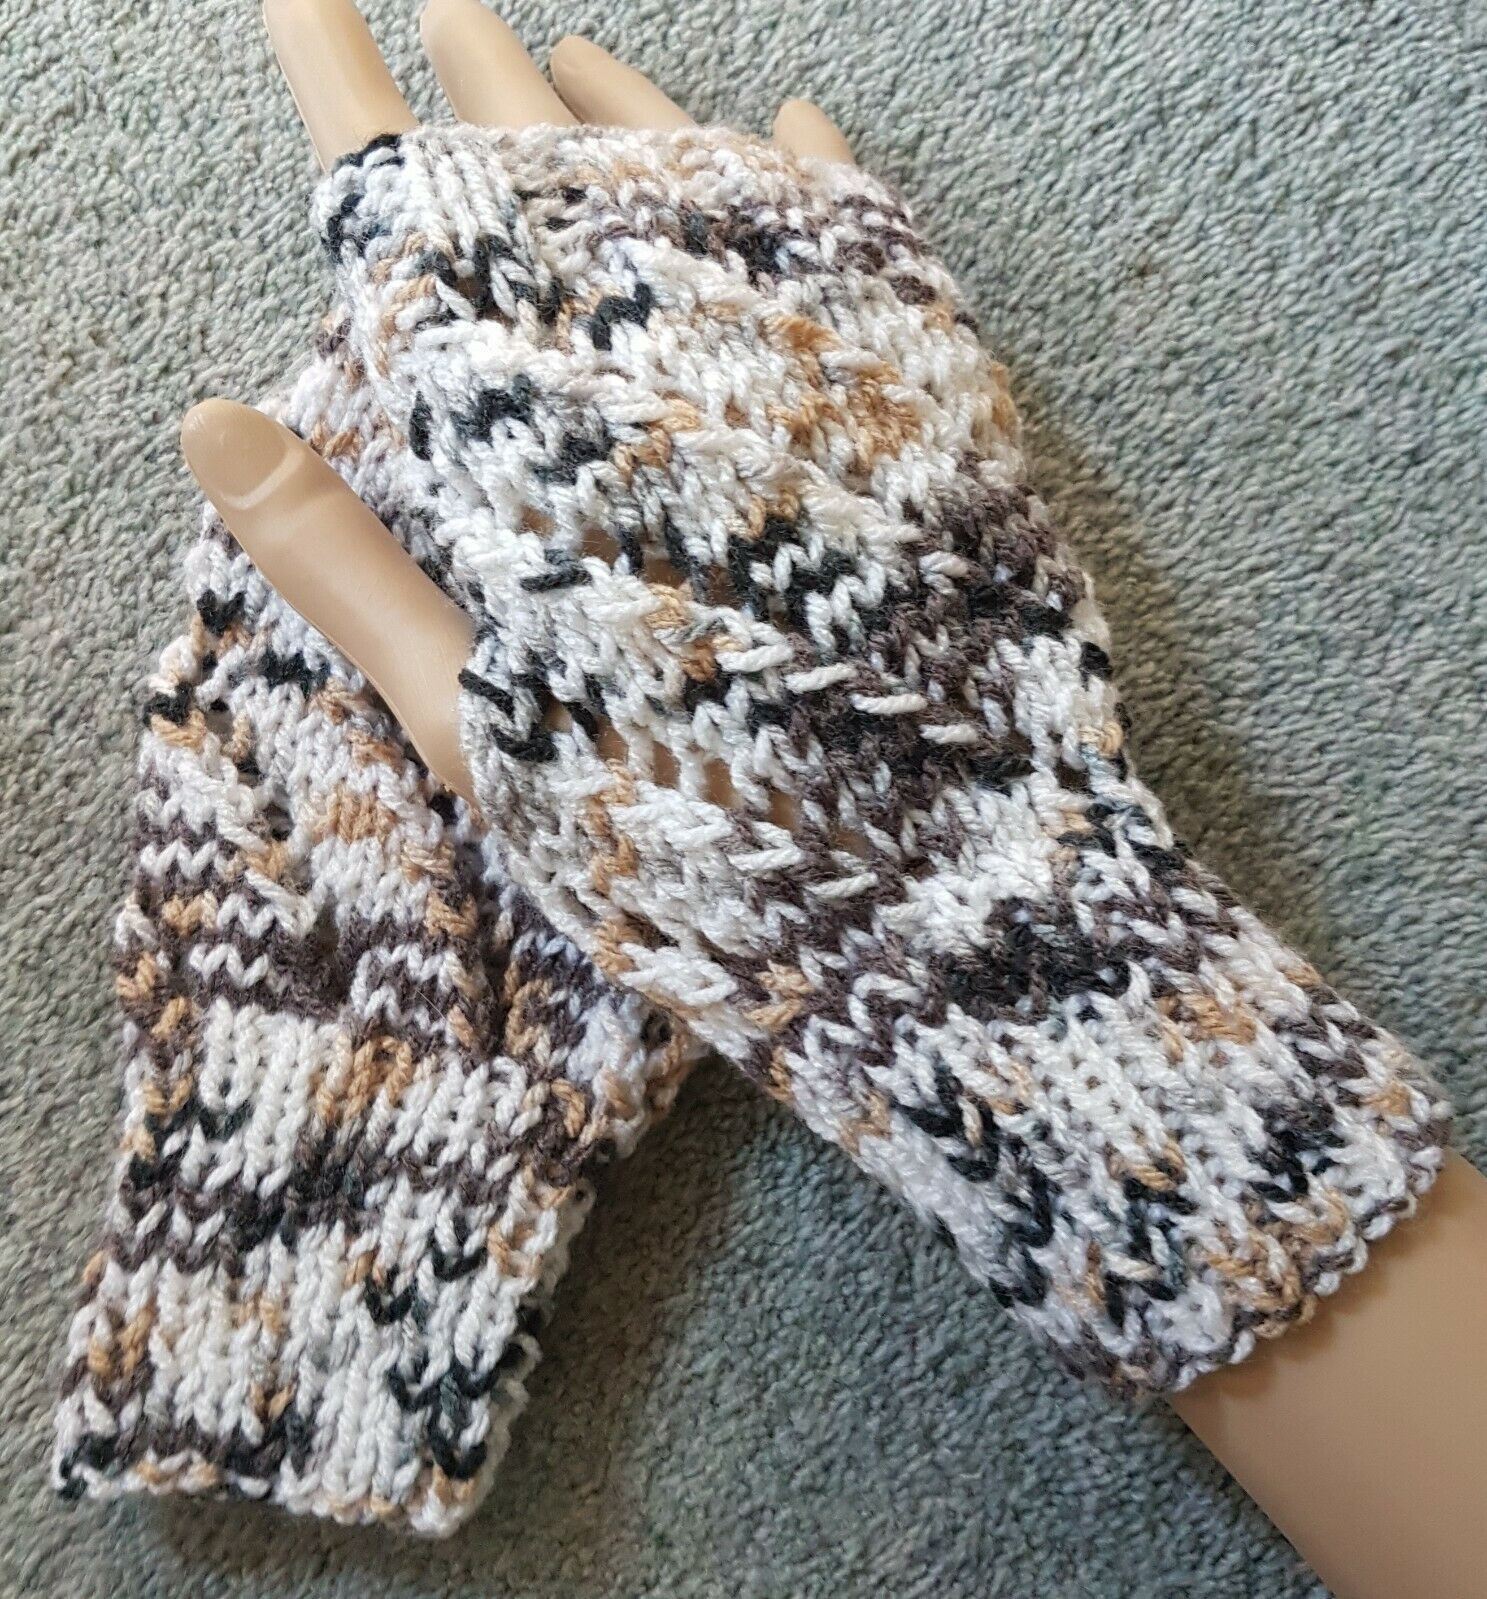 New Hand Knitted Lace Effect Fingerless Gloves/ Wrist Warmers in Brown/White